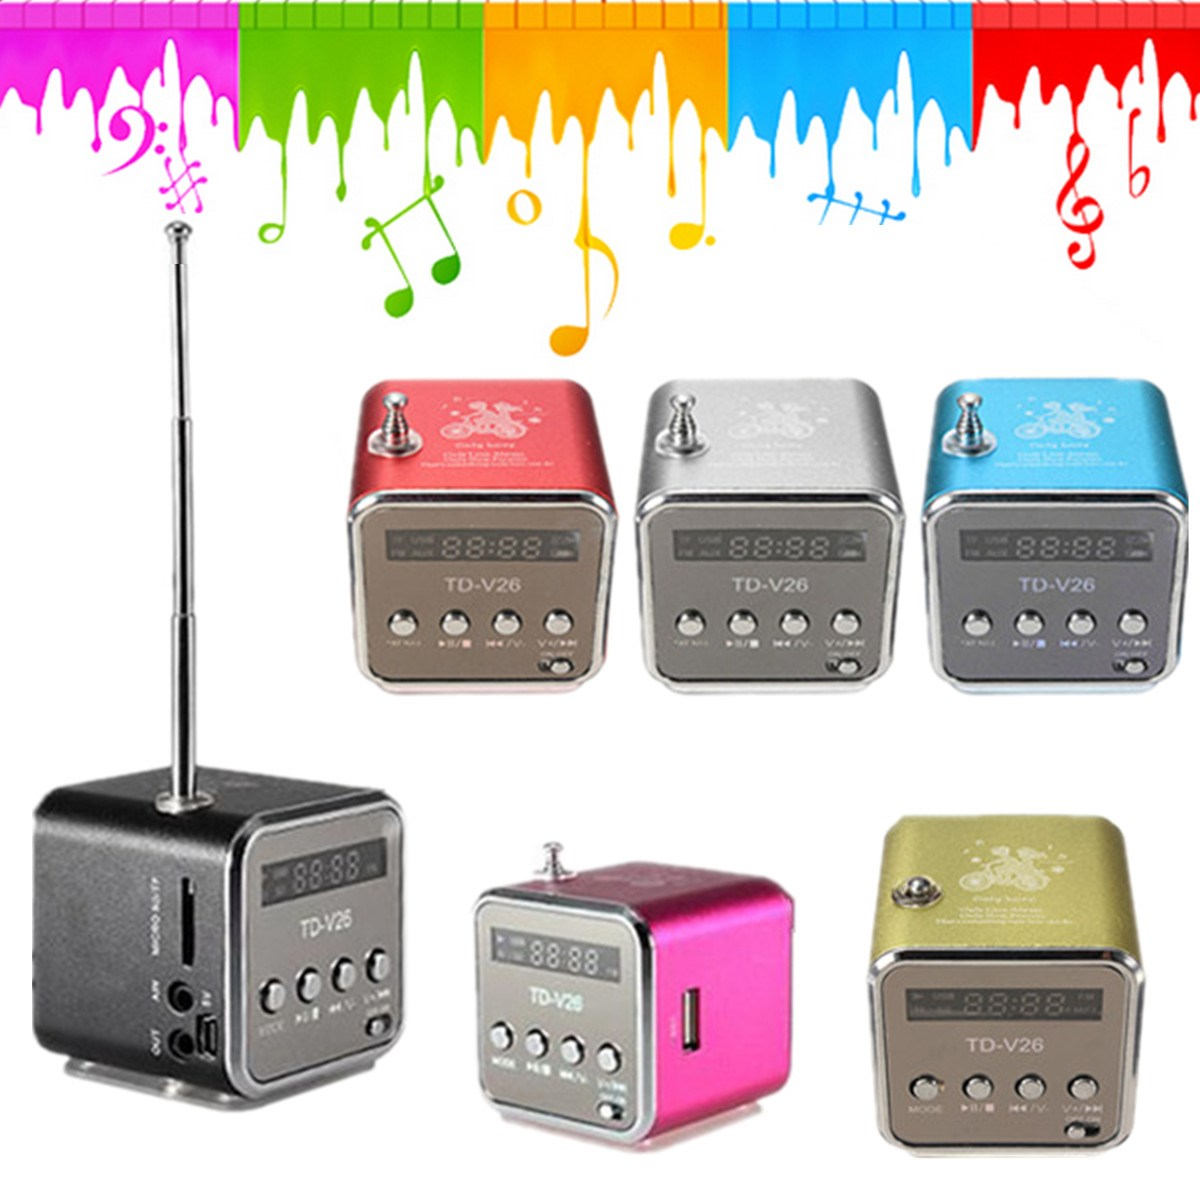 Mini Speaker Radio Wireless Portable Micro USB Stereo Speakers Ubwoofer Column Super FM Radio Receiver hx2031 radio fm radio fm radio diy micro chip kit parts supply